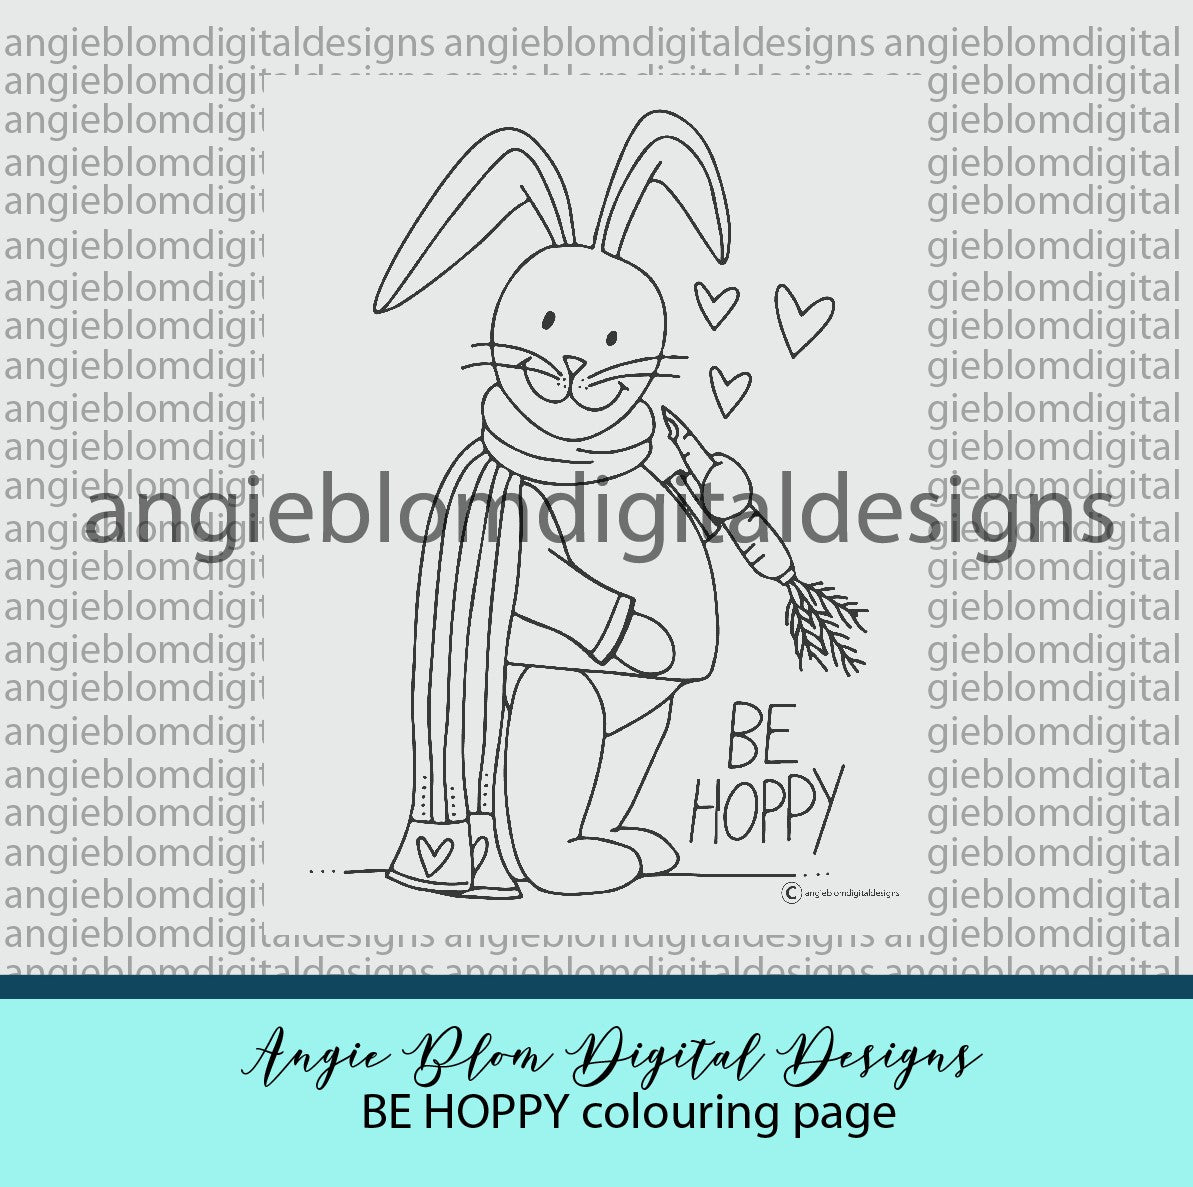 Be Hoppy Colouring page